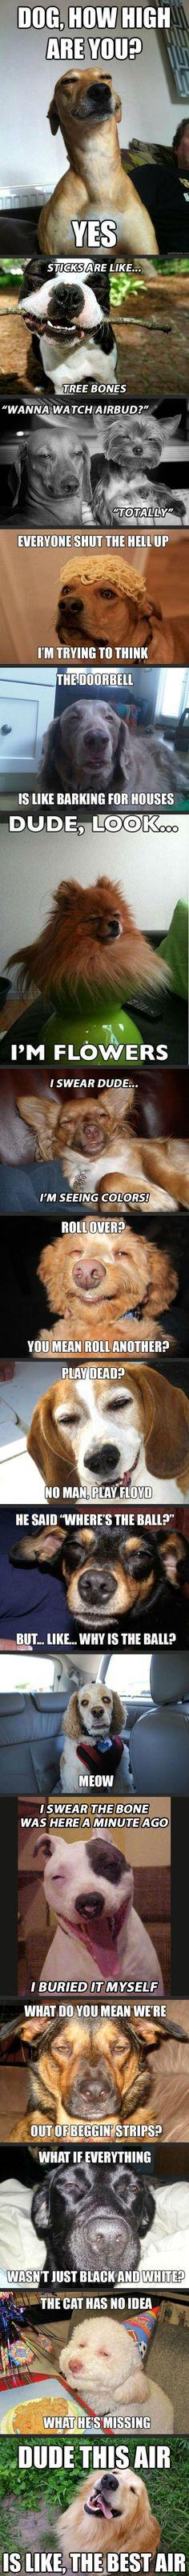 Dogs on drugs: Animals, Funny Dogs, Stoned Dogs, Stoner Dog, High Dogs, Funny Stuff, Funnies, So Funny